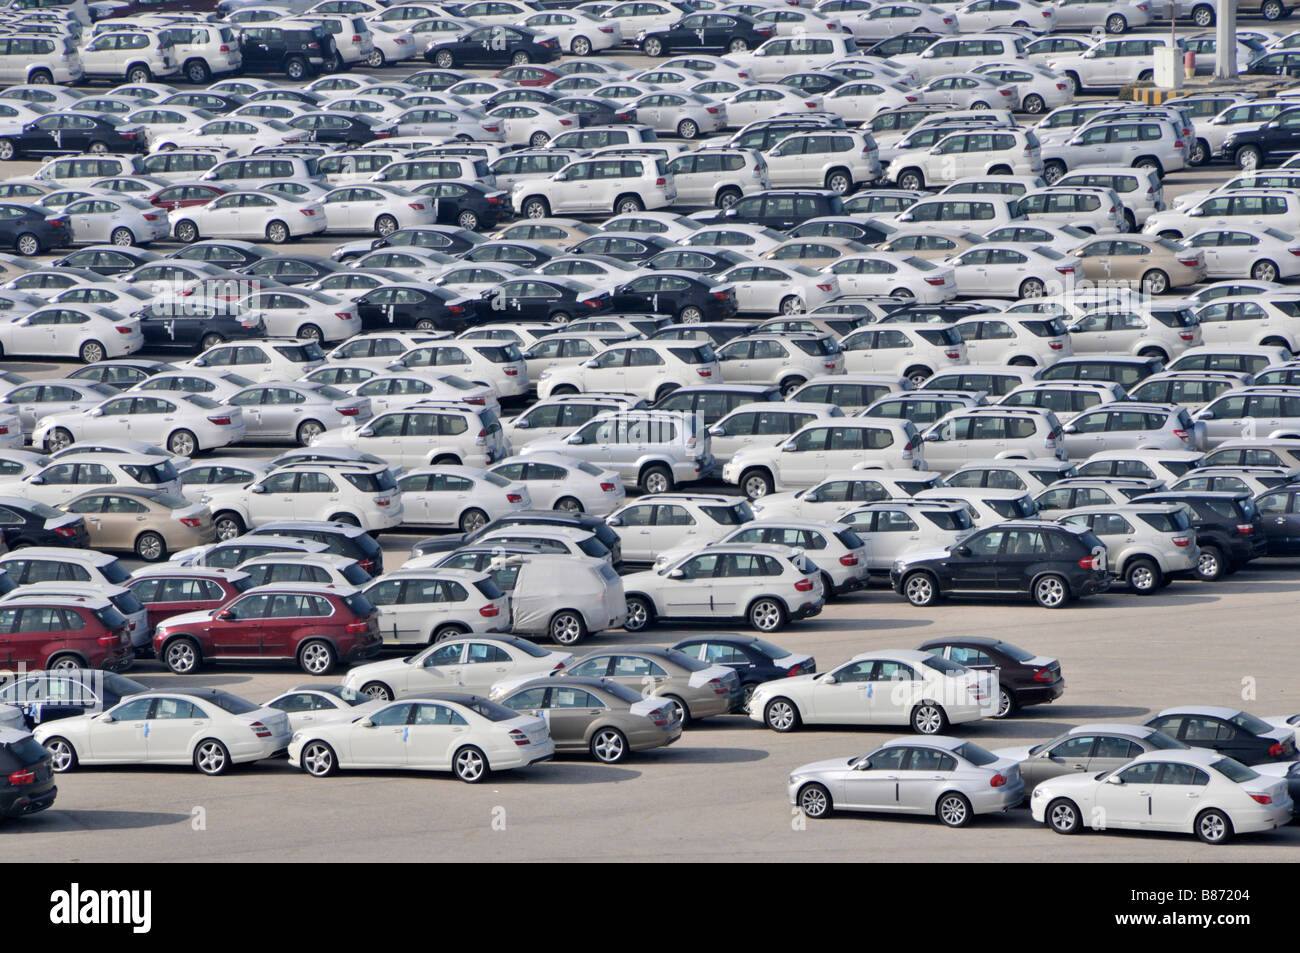 Abu Dhabi looking down on dockside storage of imported new cars awaiting distribution - Stock Image